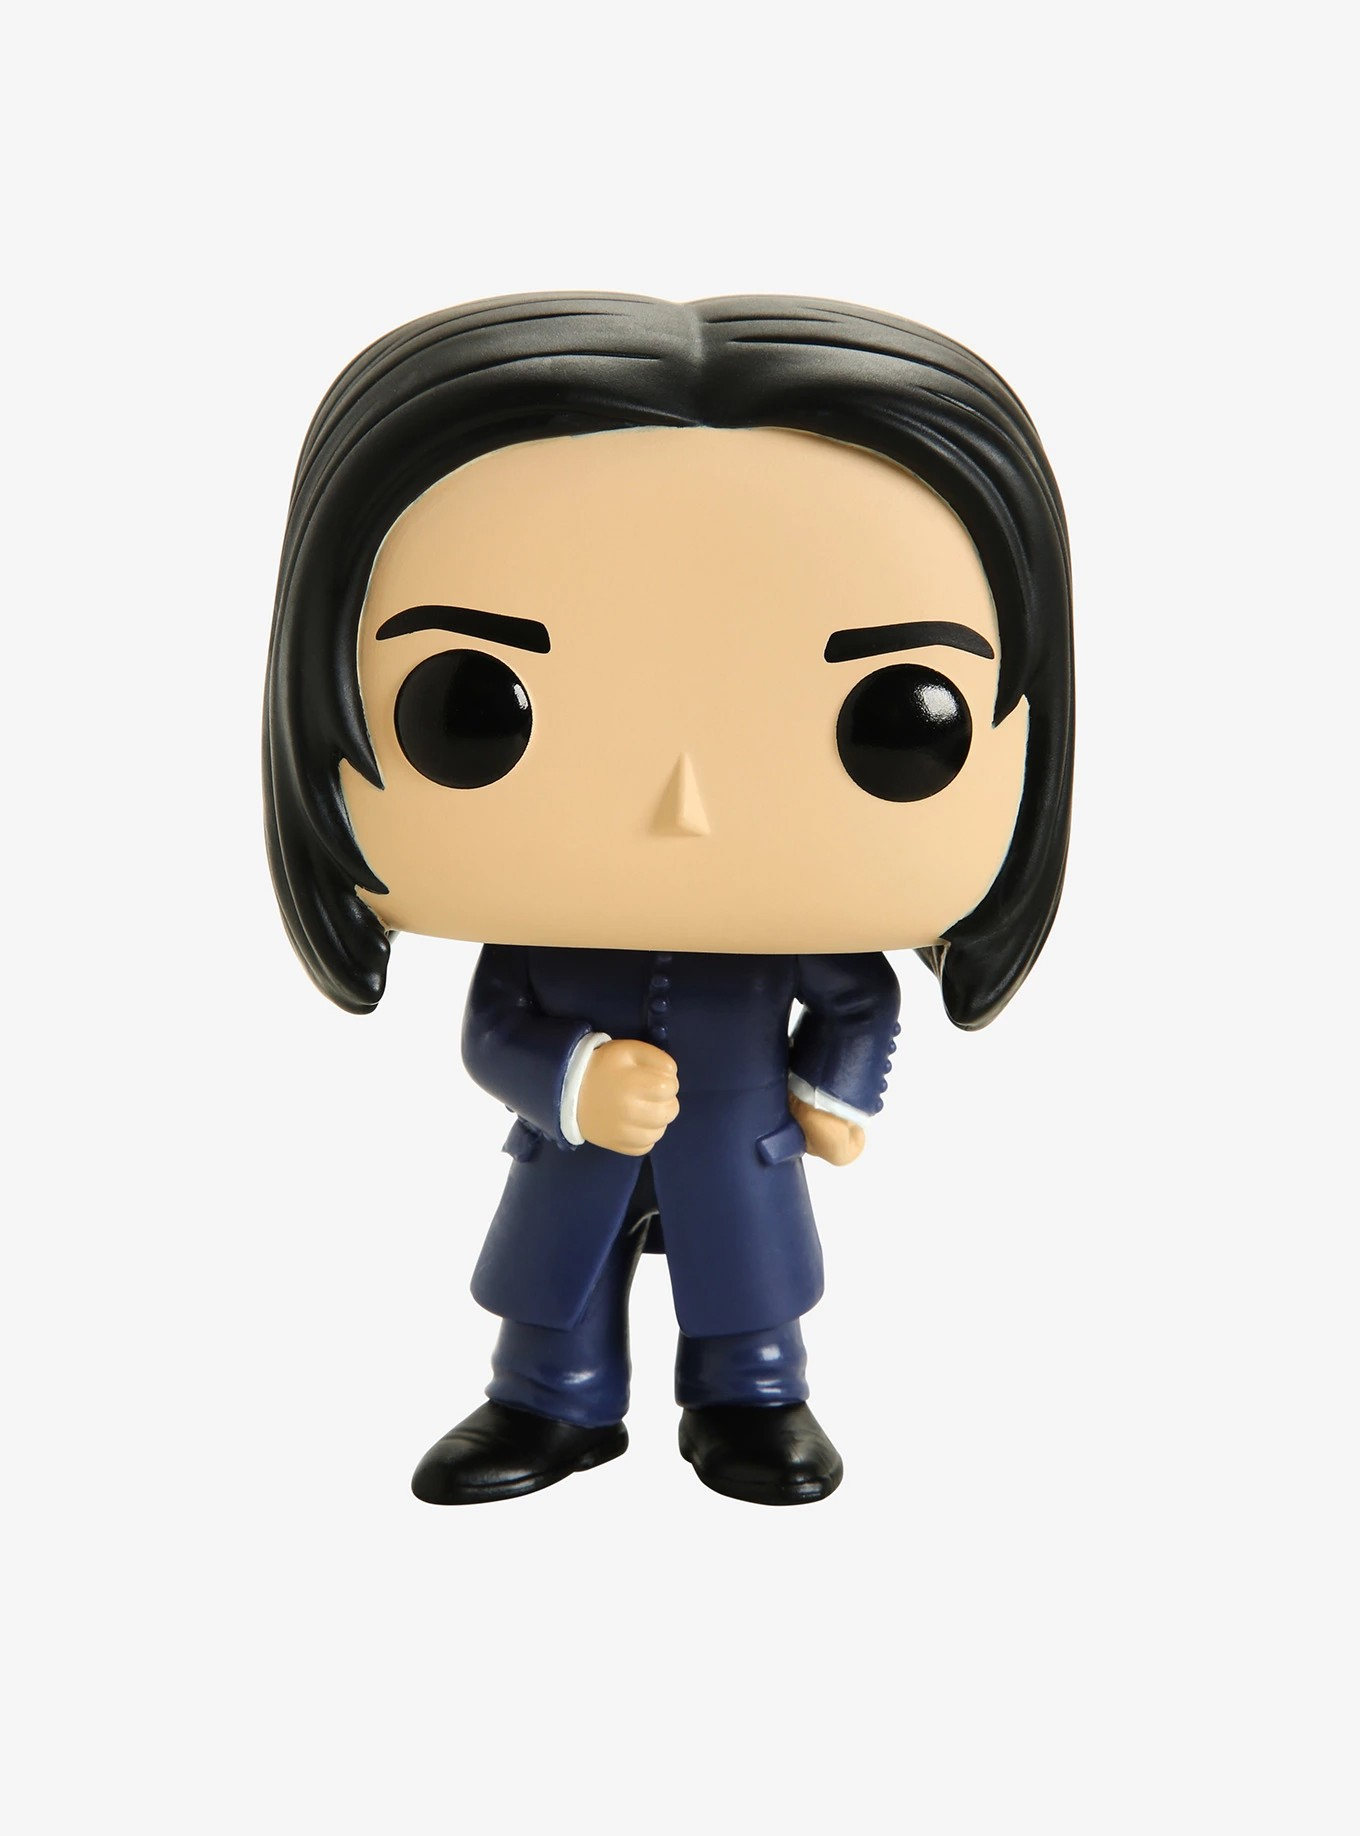 Severus Snape #94 - Harry Potter - Funko Pop!